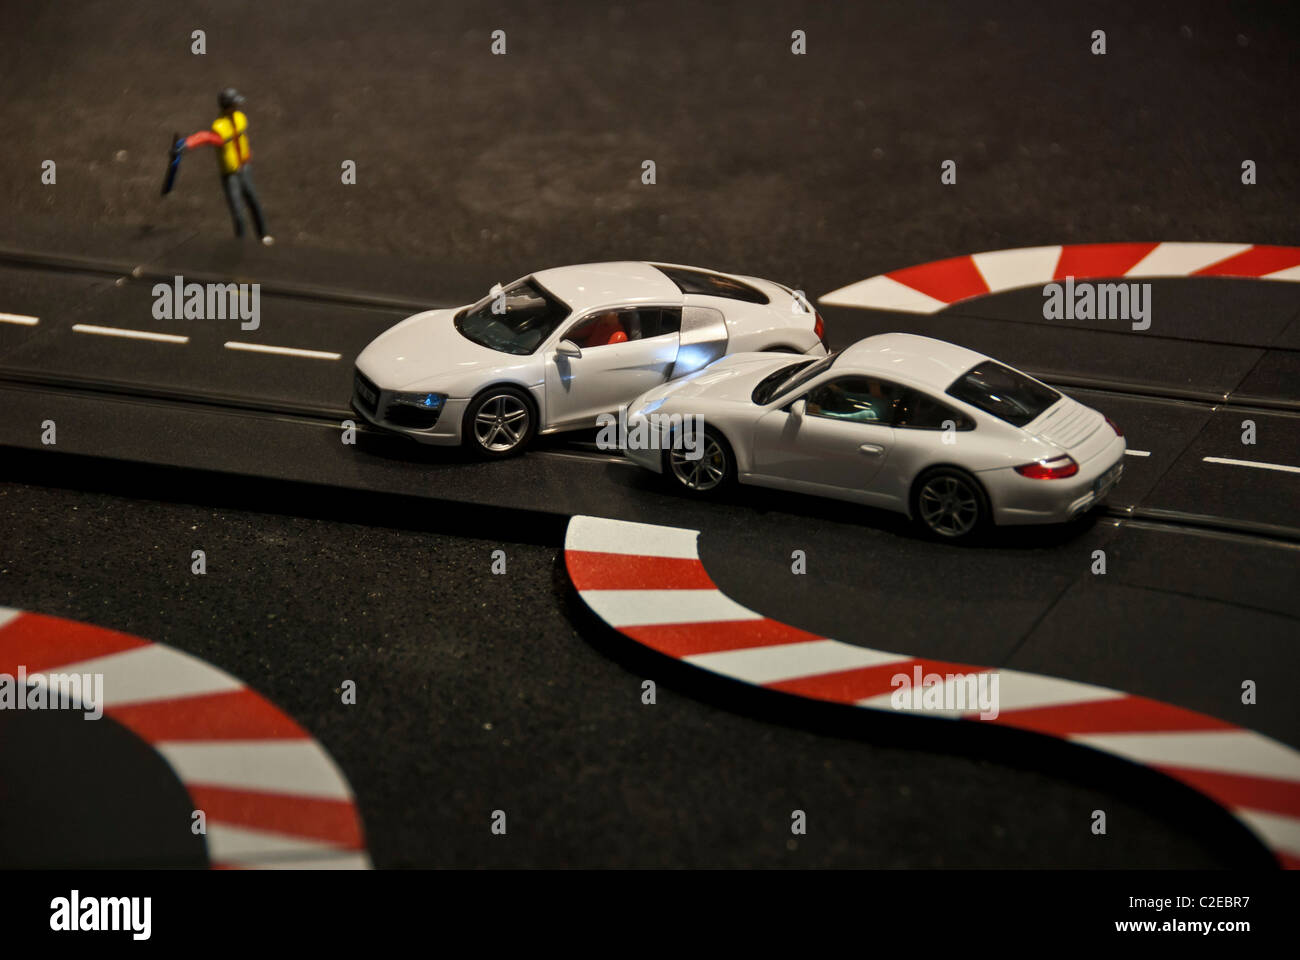 Car Accident In A Model Racetrack Two Race Cars Crash During A